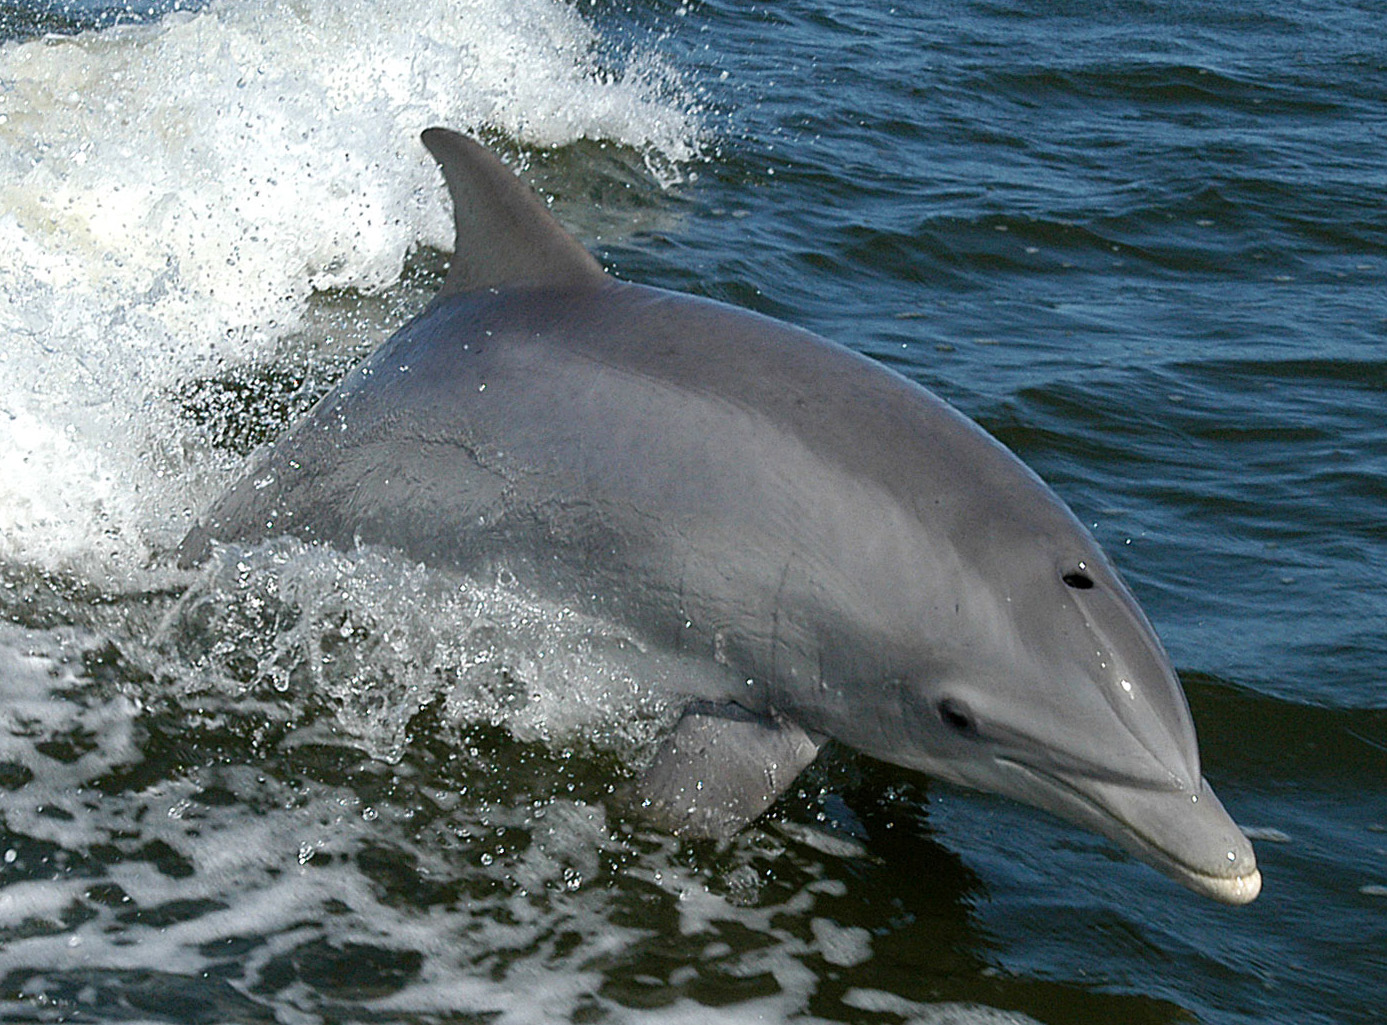 Rachel Carson had the right idea: DDT persists in unexpected ways in dolphins